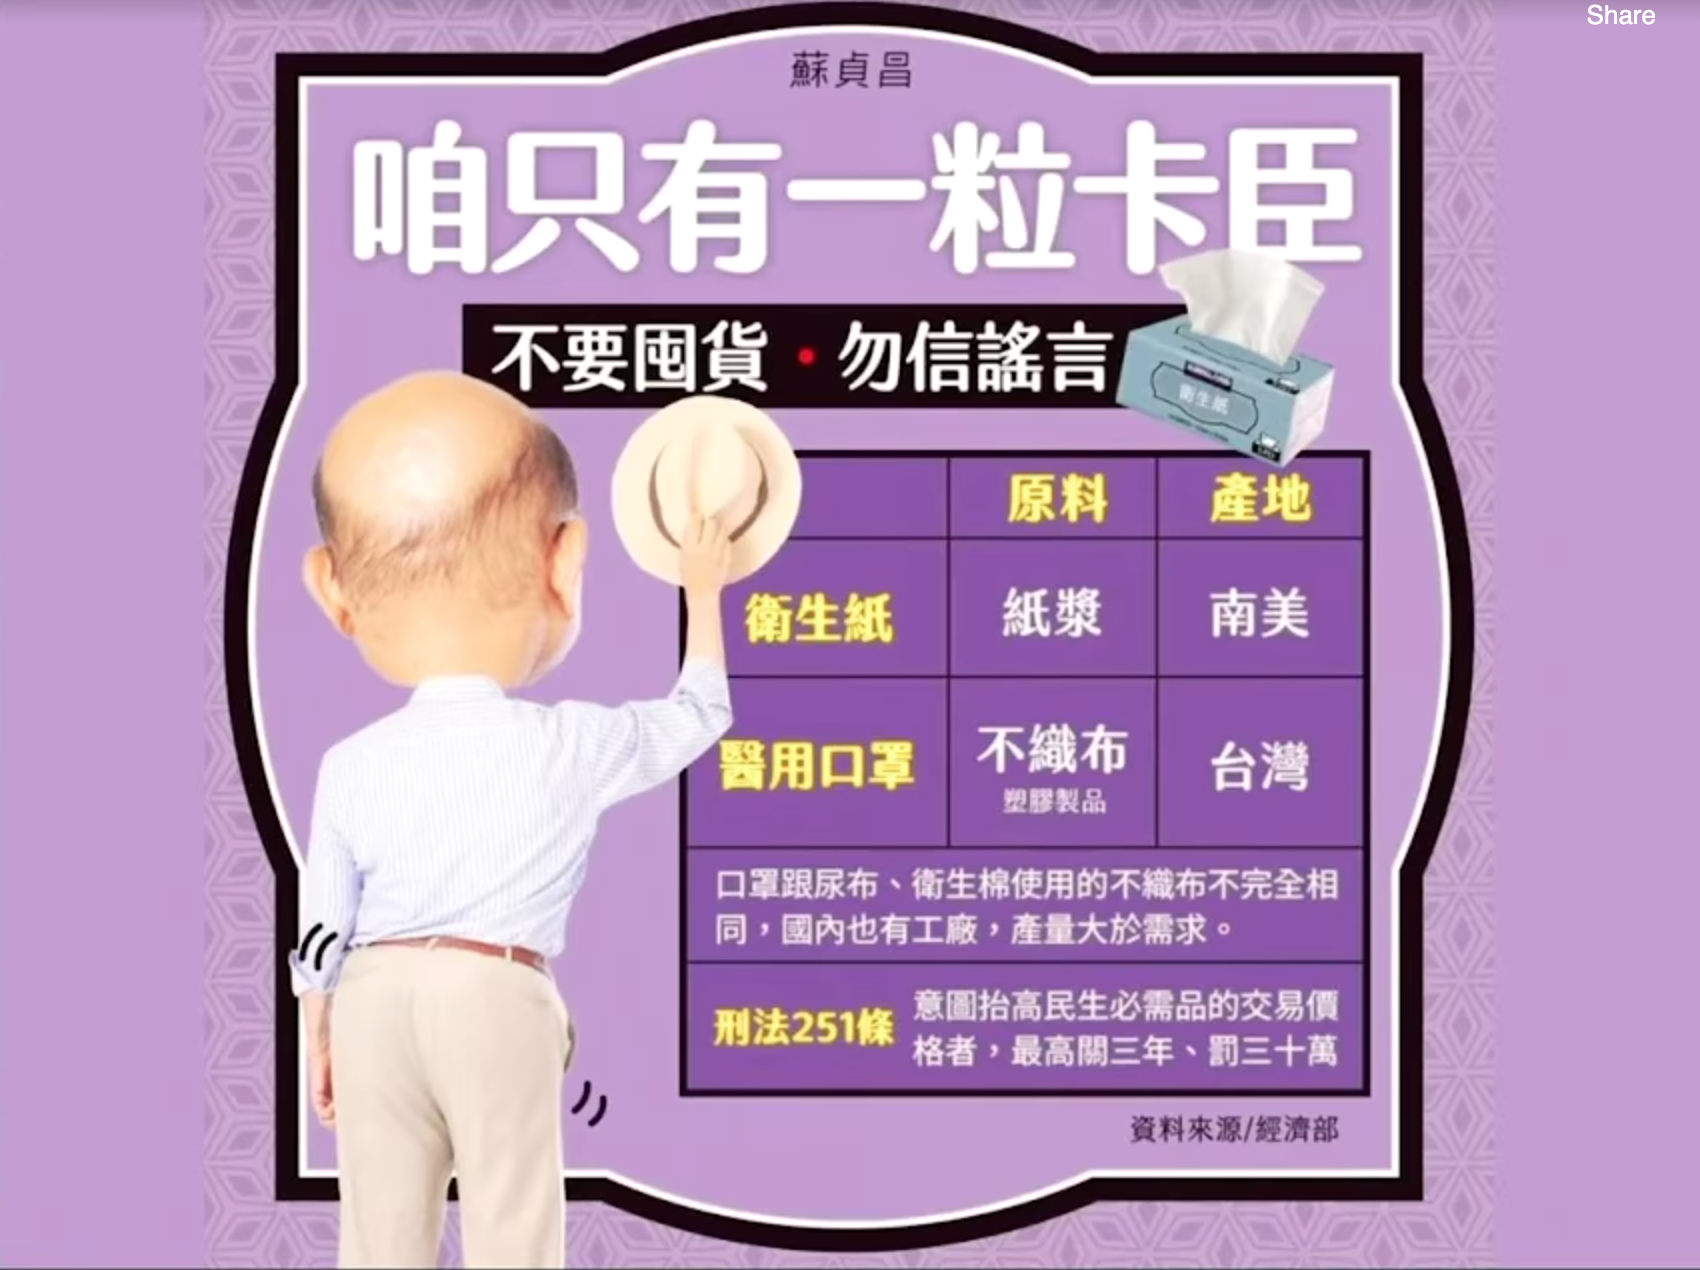 """We only have one pair of buttocks"" meme from Taiwanese Premier Su Tseng-chang."